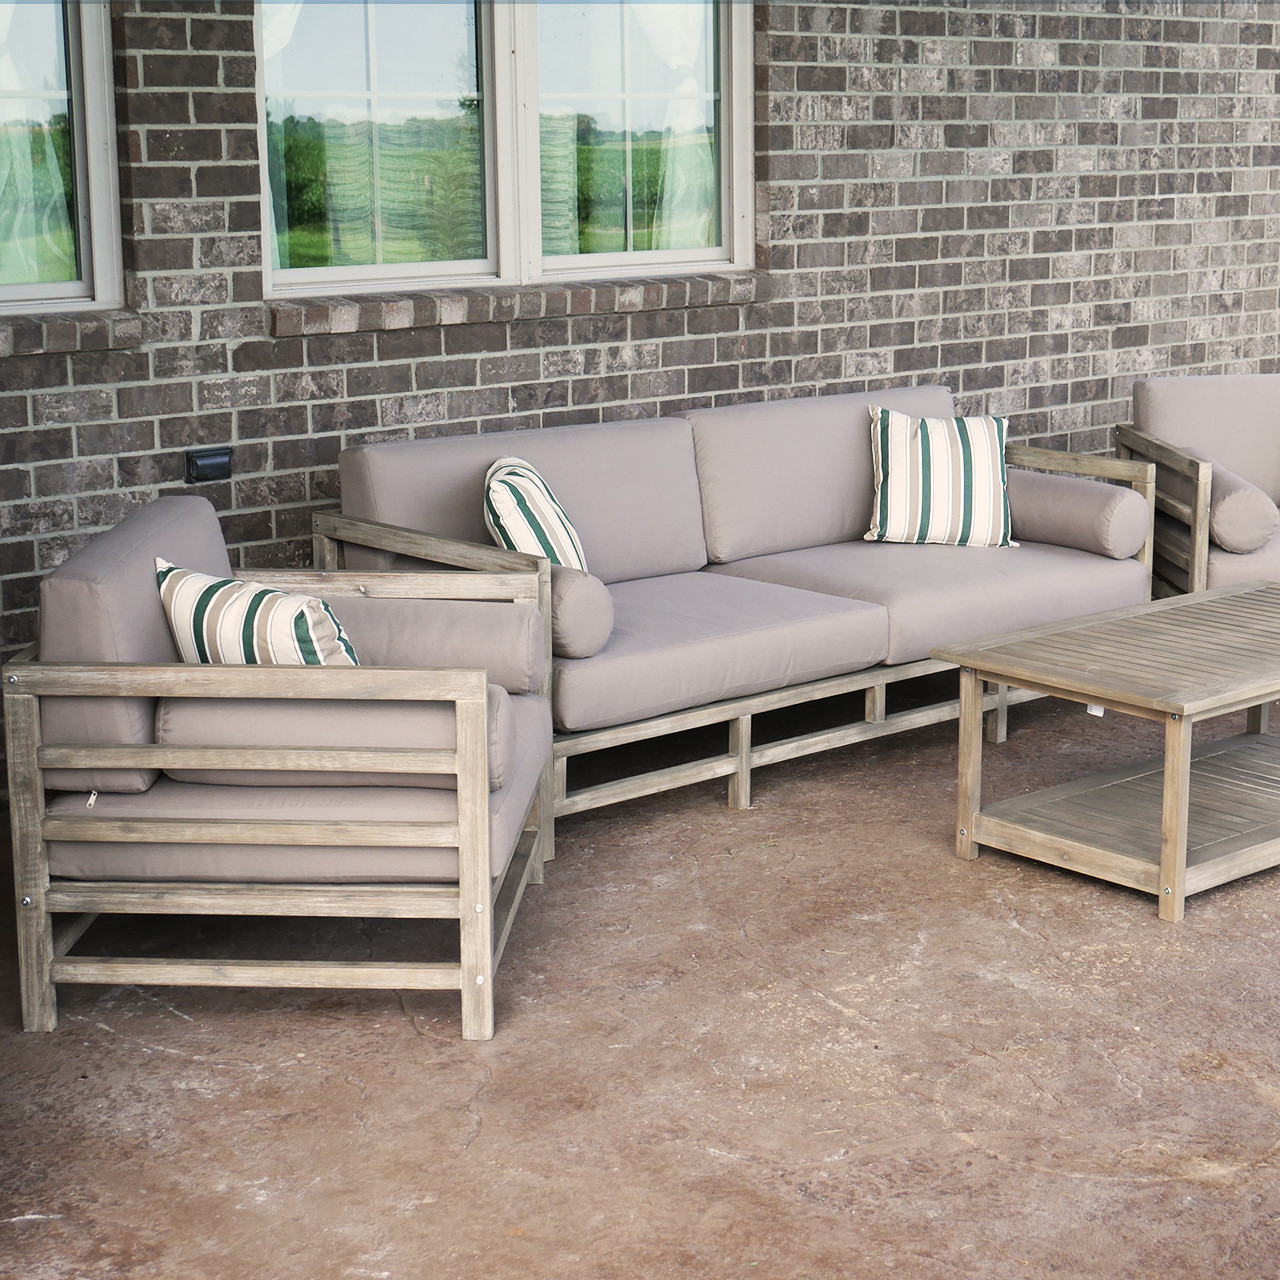 Grand Haven 4-Piece Acacia Wood Outdoor Patio Sofa Set ... on Outdoor Loveseat Sets  id=98840